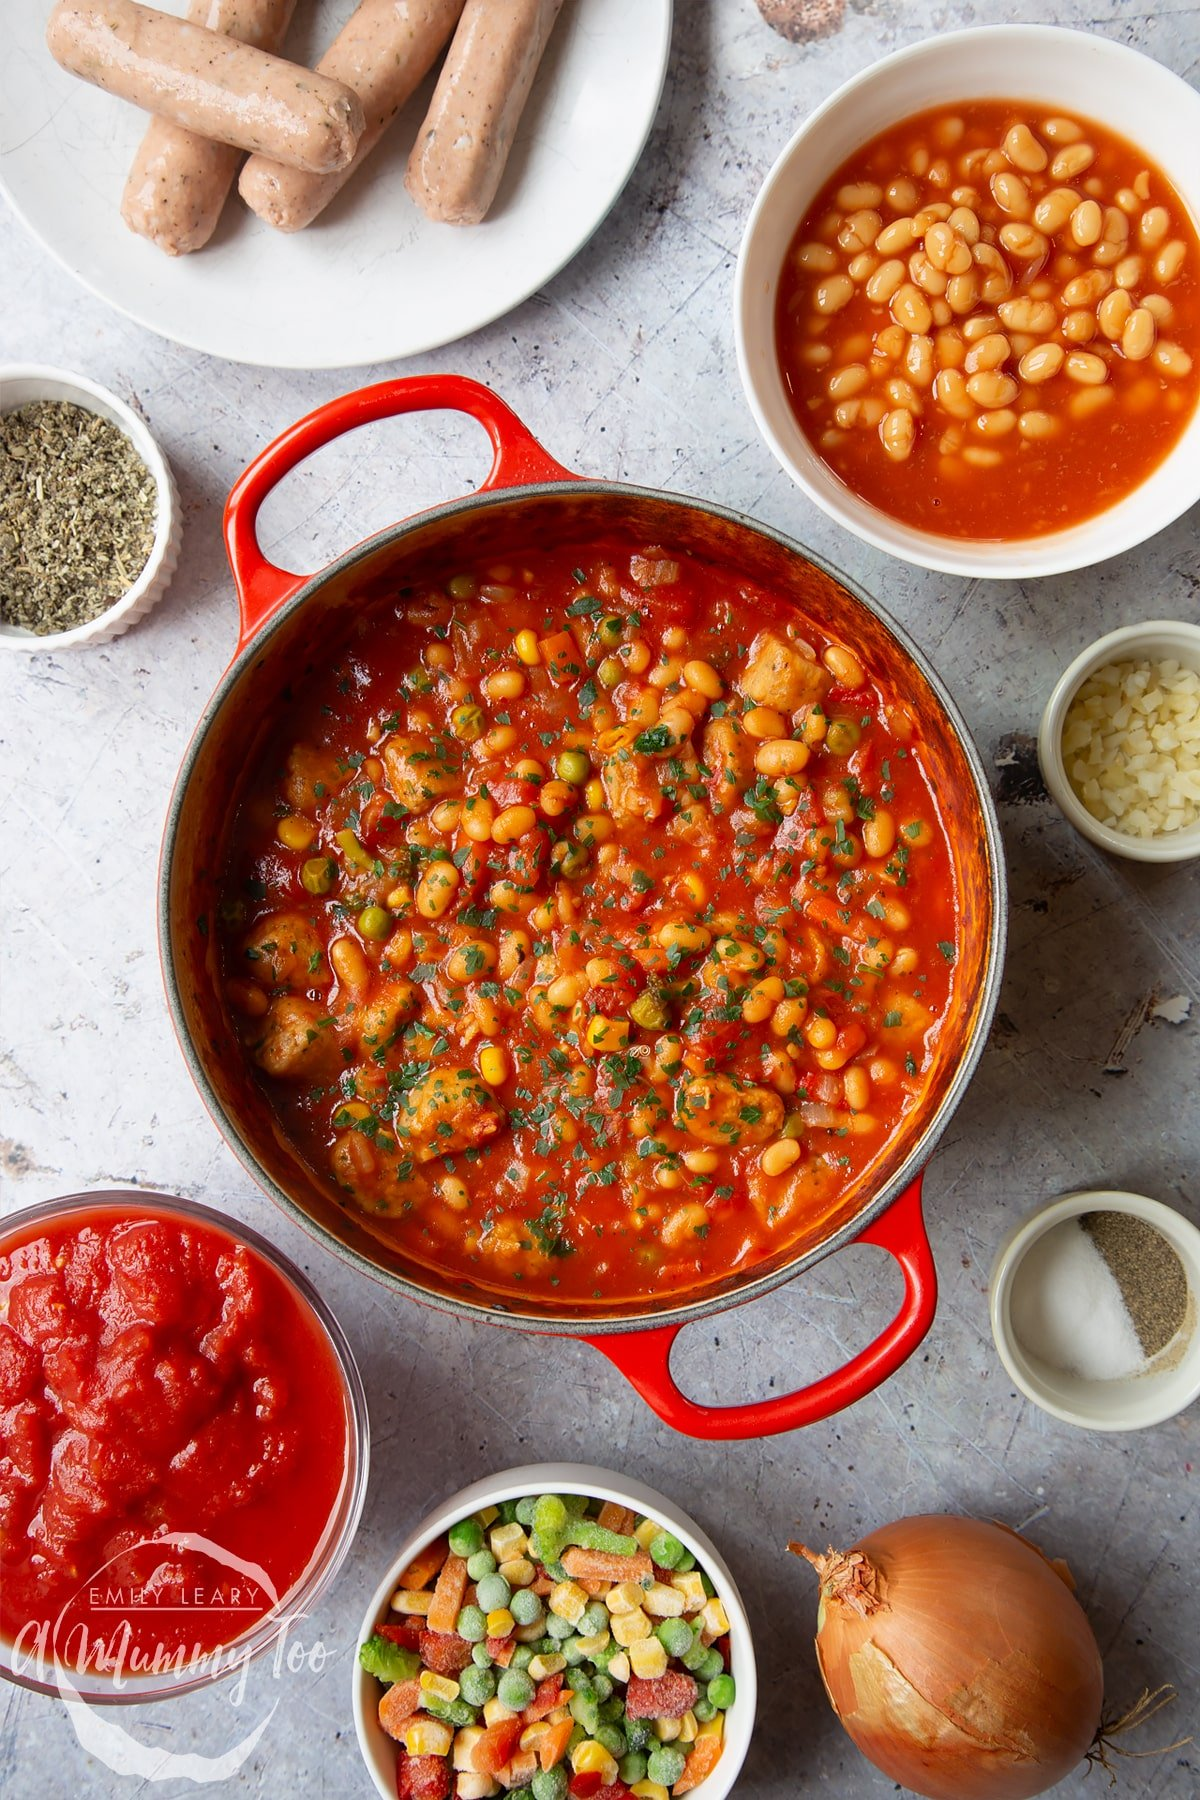 Veggie sausage and bean casserole in a large red pot.